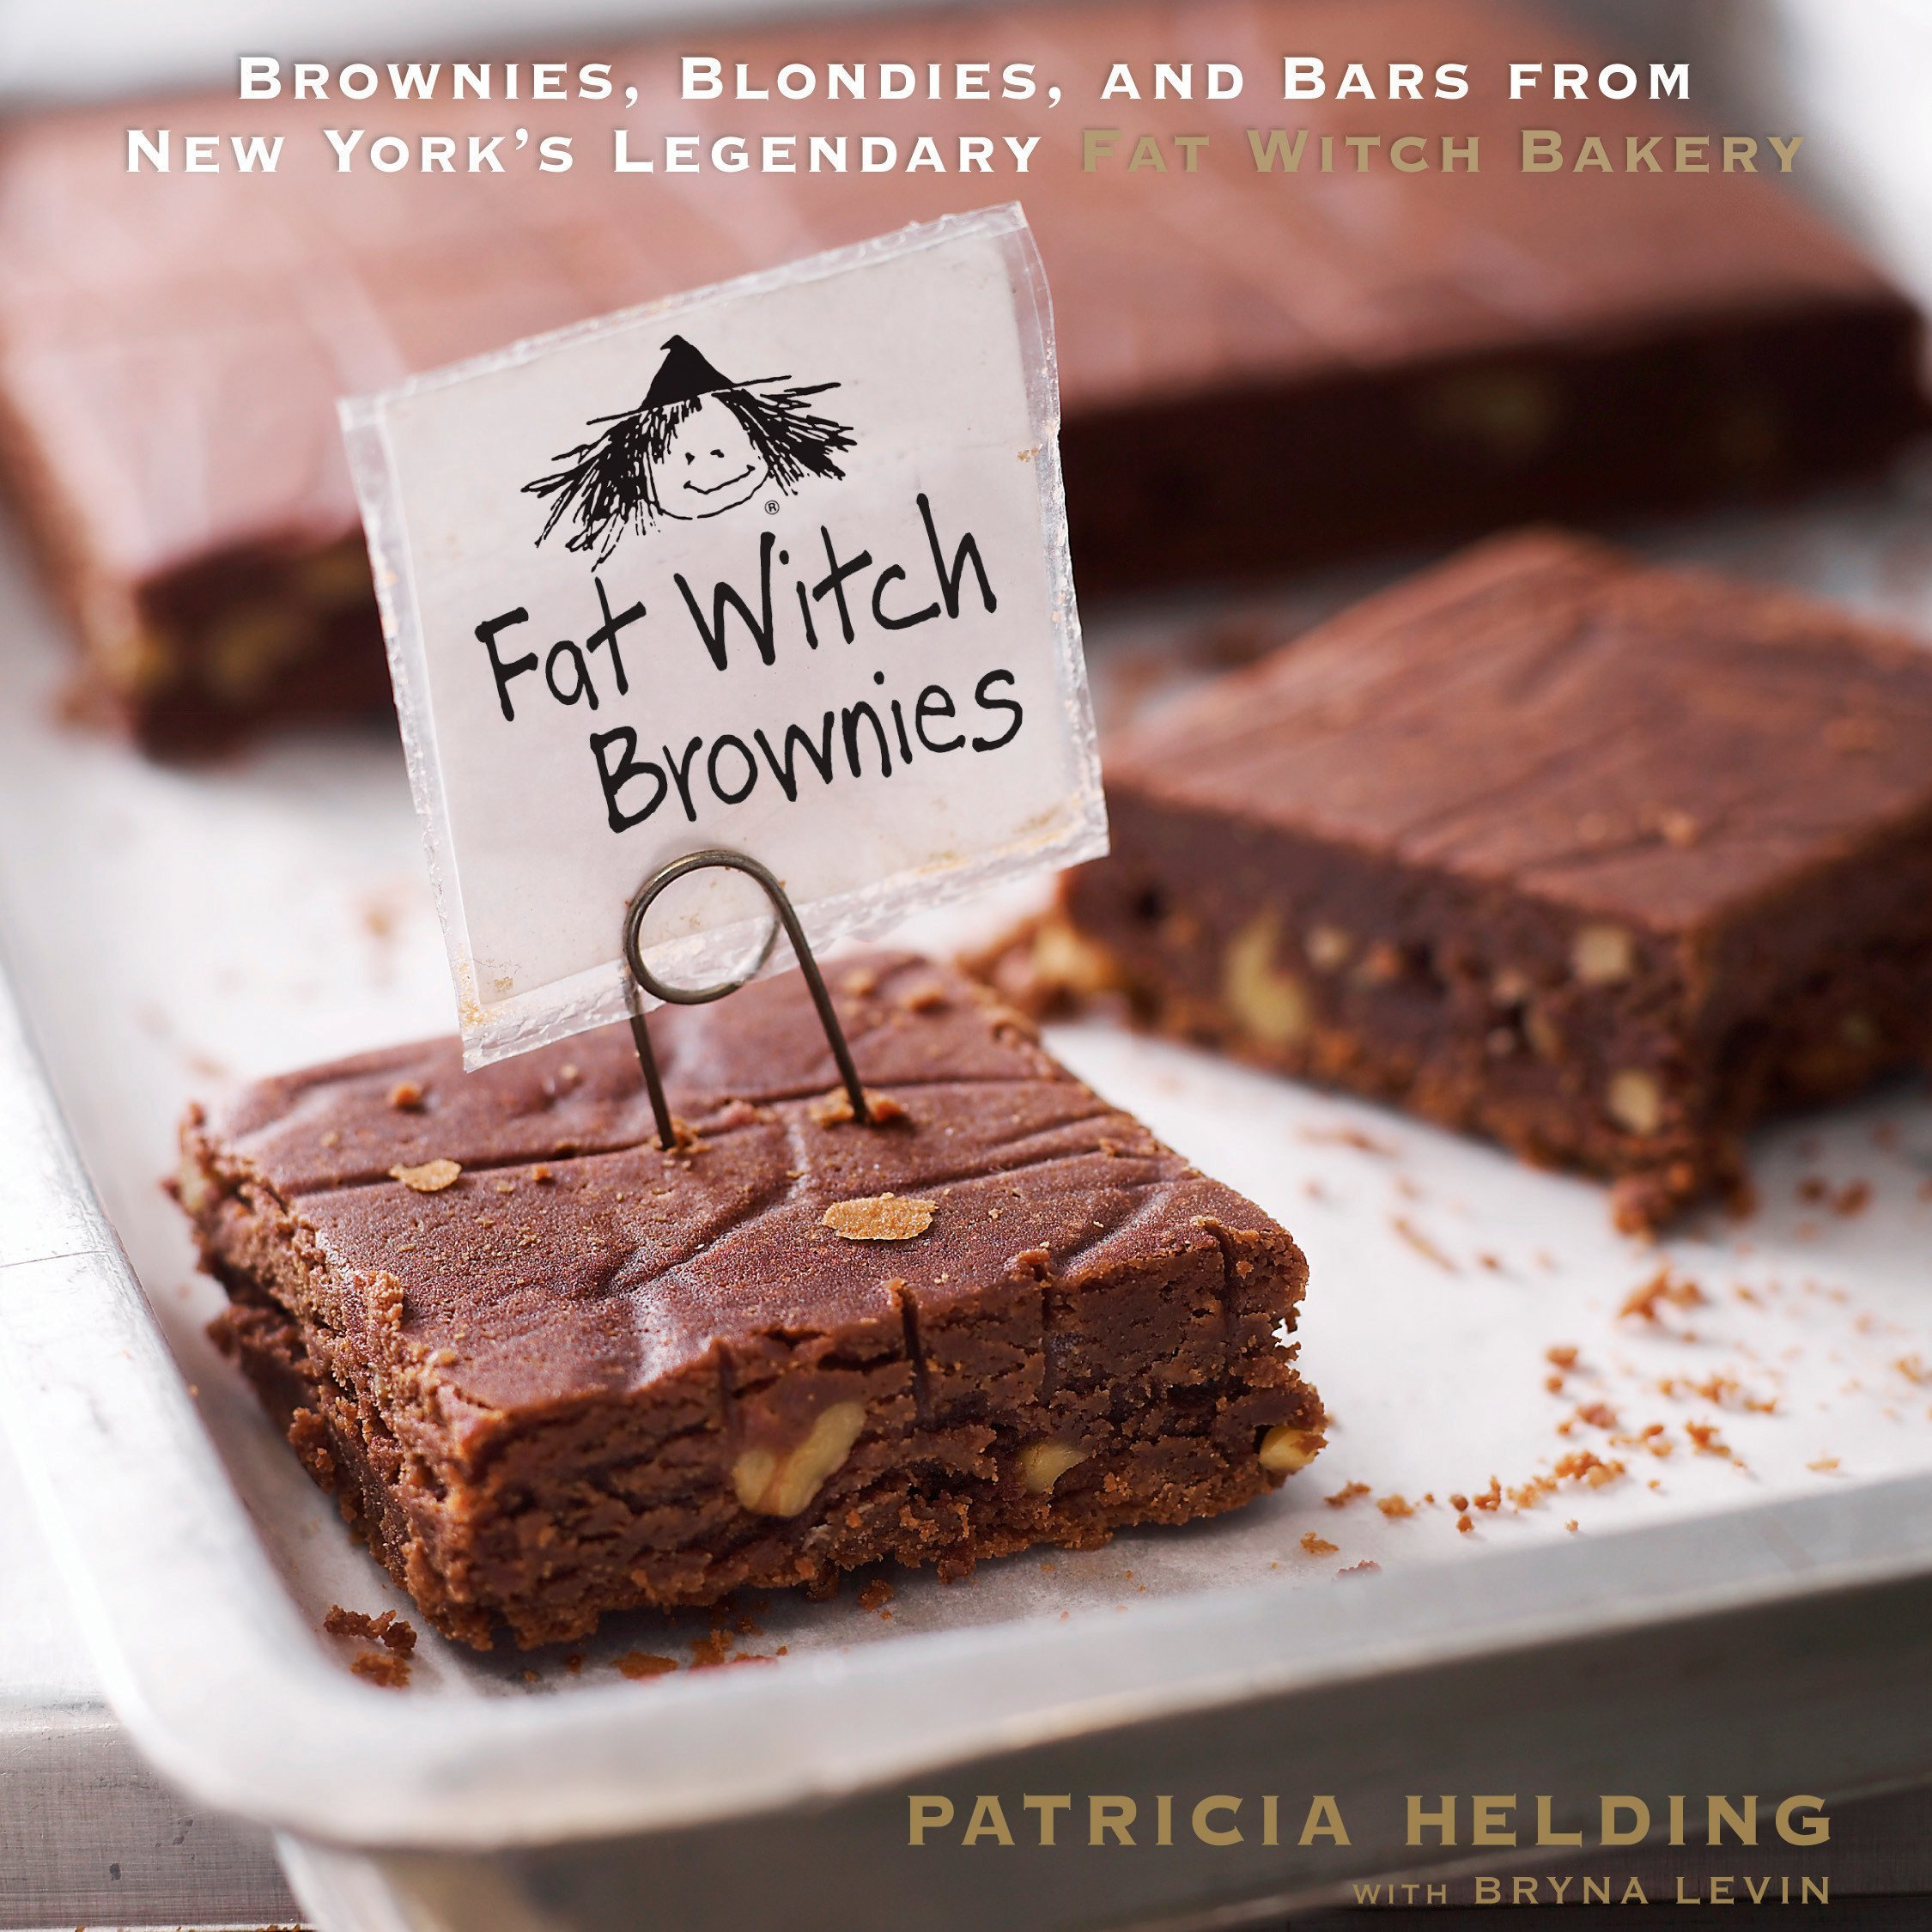 Fat Witch Brownies Blondies And Bars From New Yorks Legendary Bakery Baking Cookbooks Patricia Helding Bryna Levin